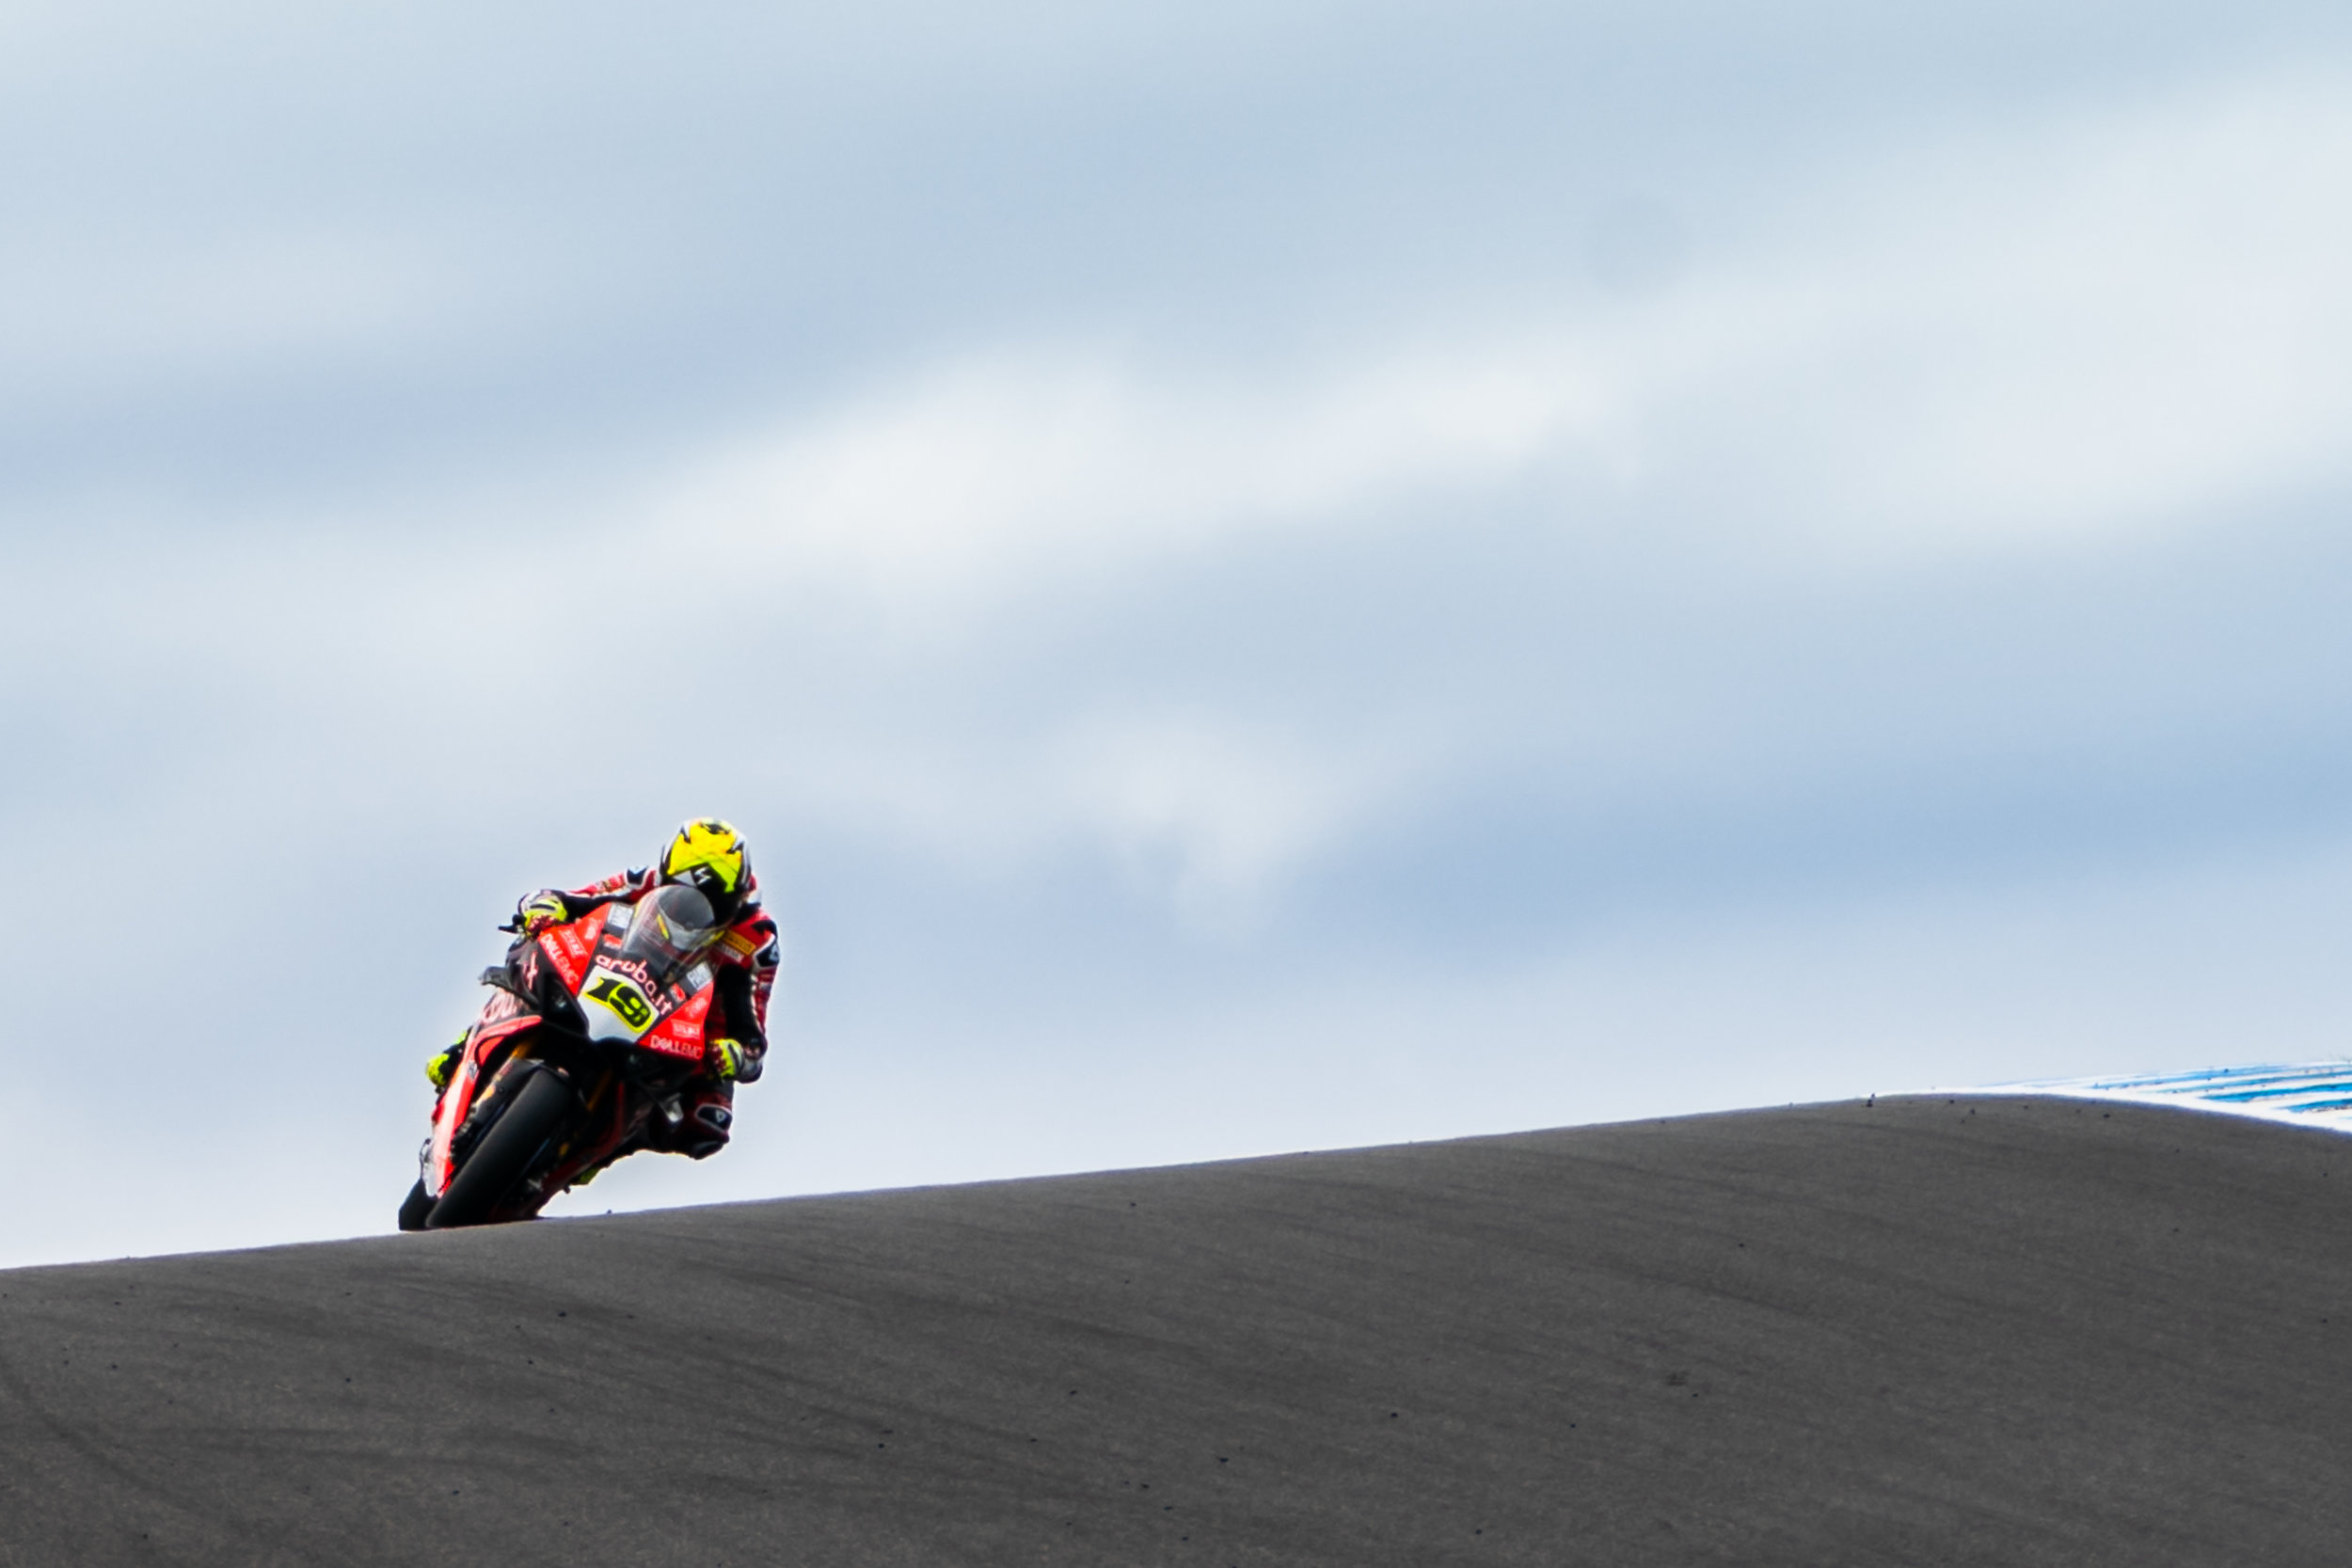 World Superbikes 2019, Phillip Island, Australia